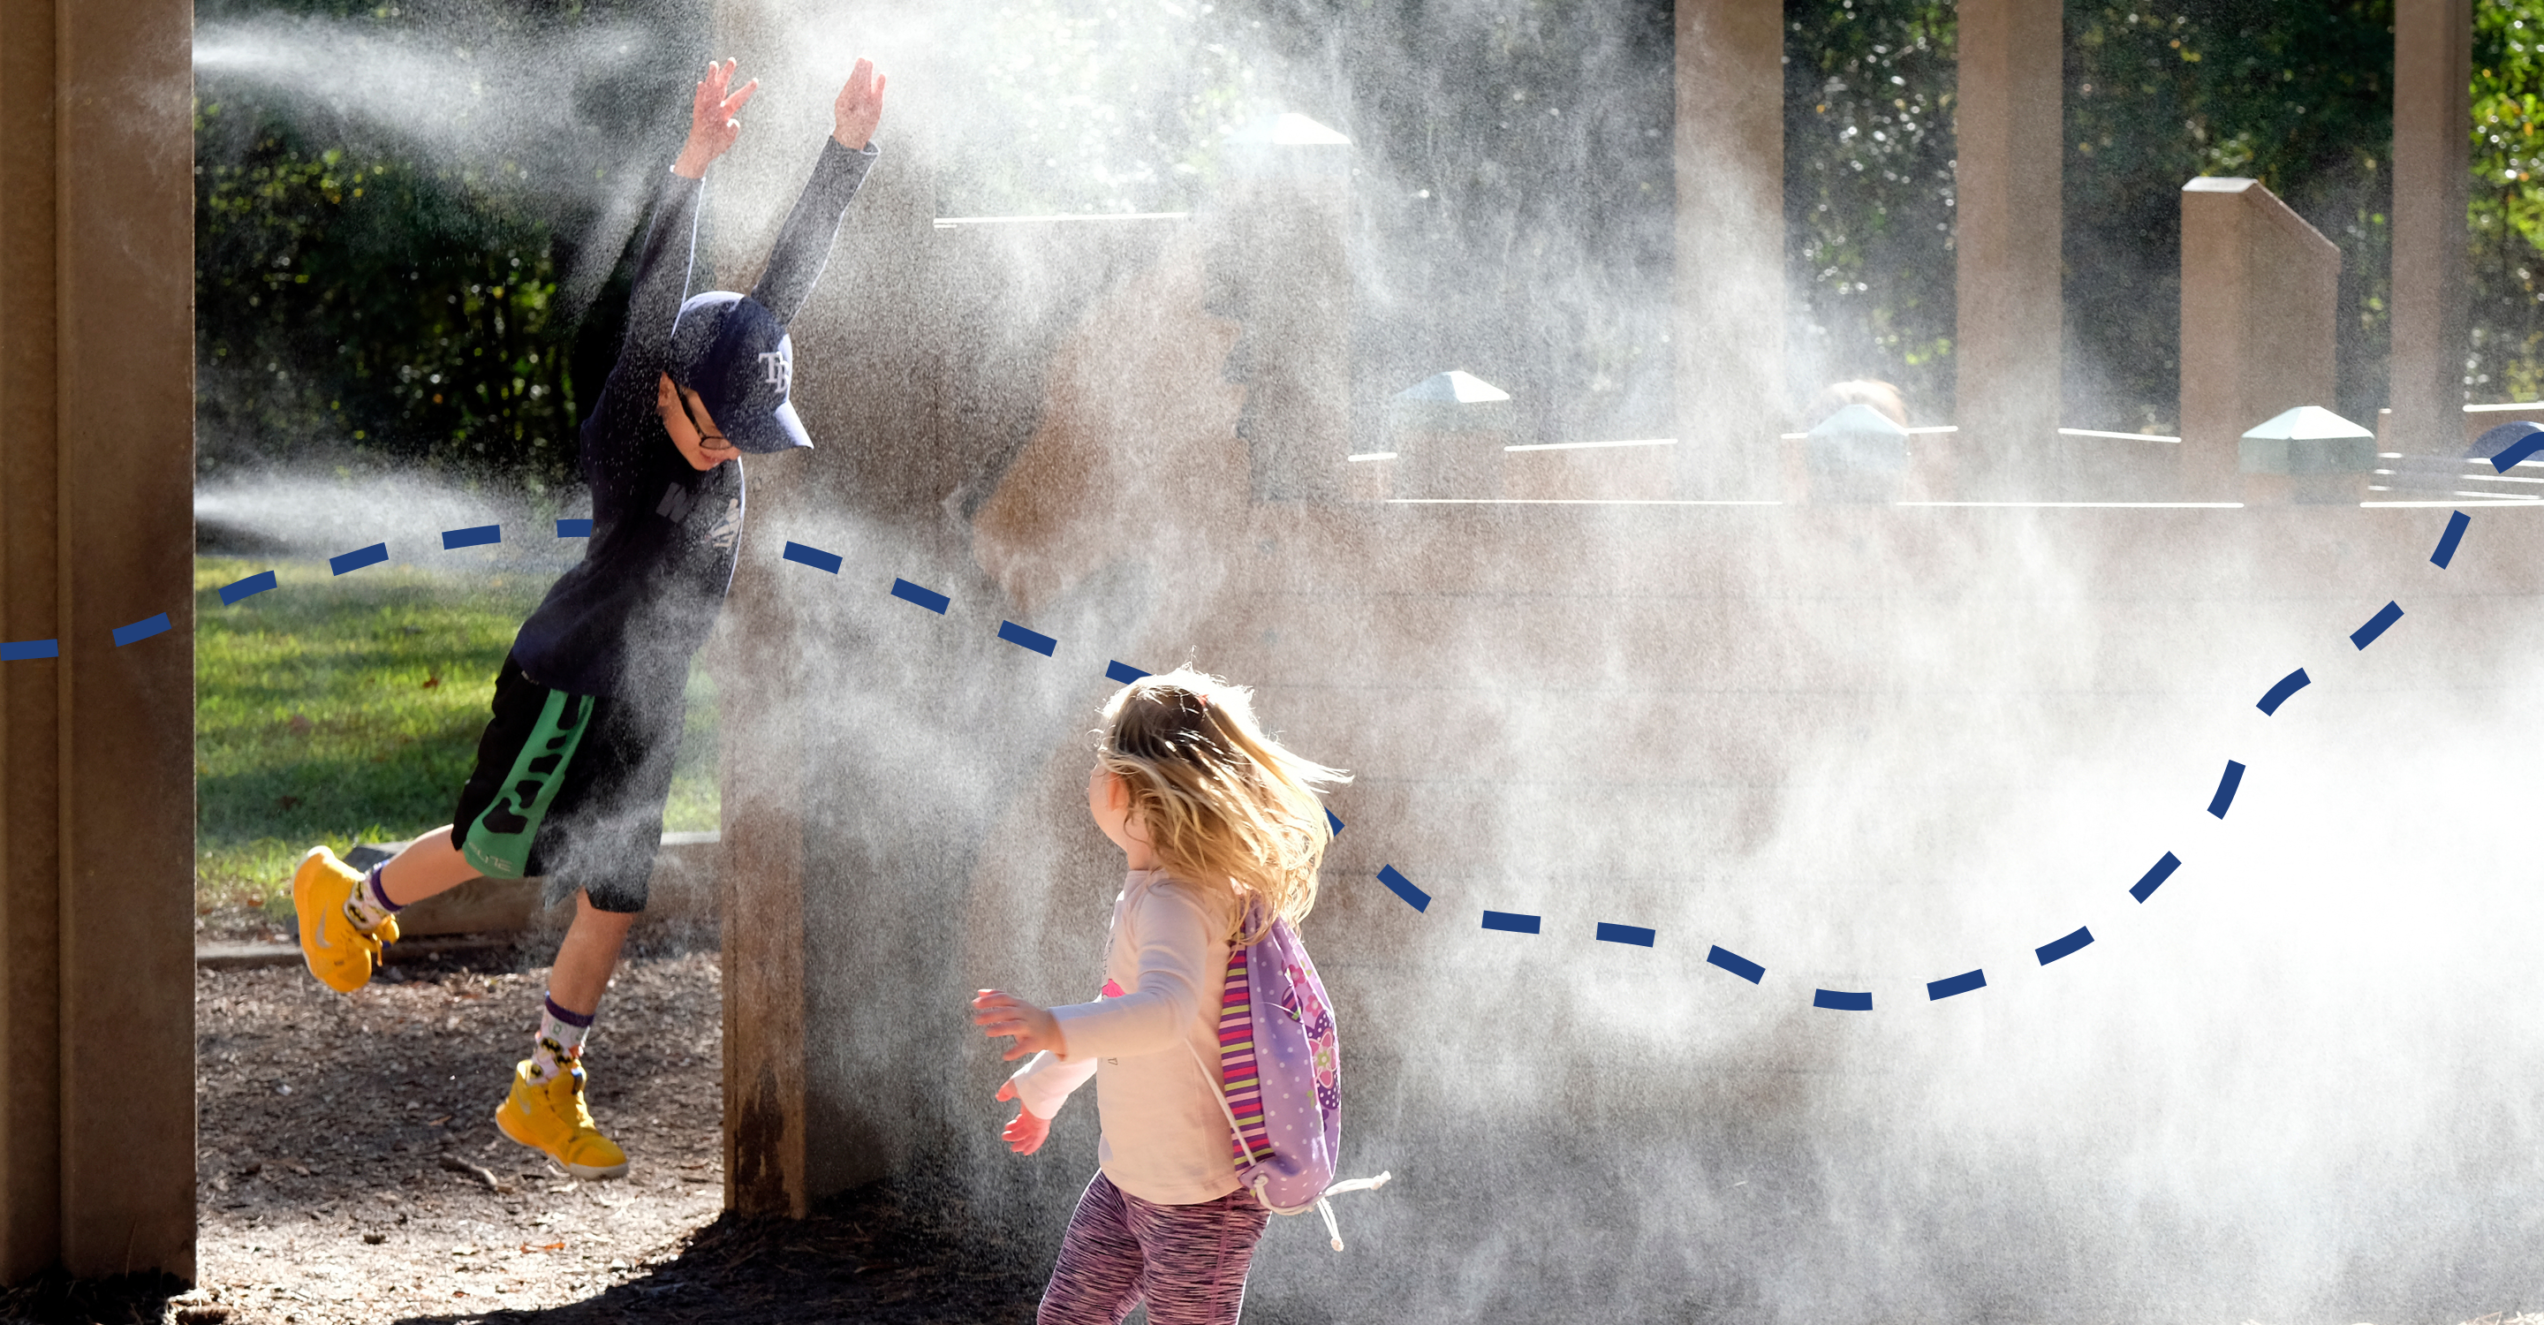 Two children playing in a mist station at a playground.